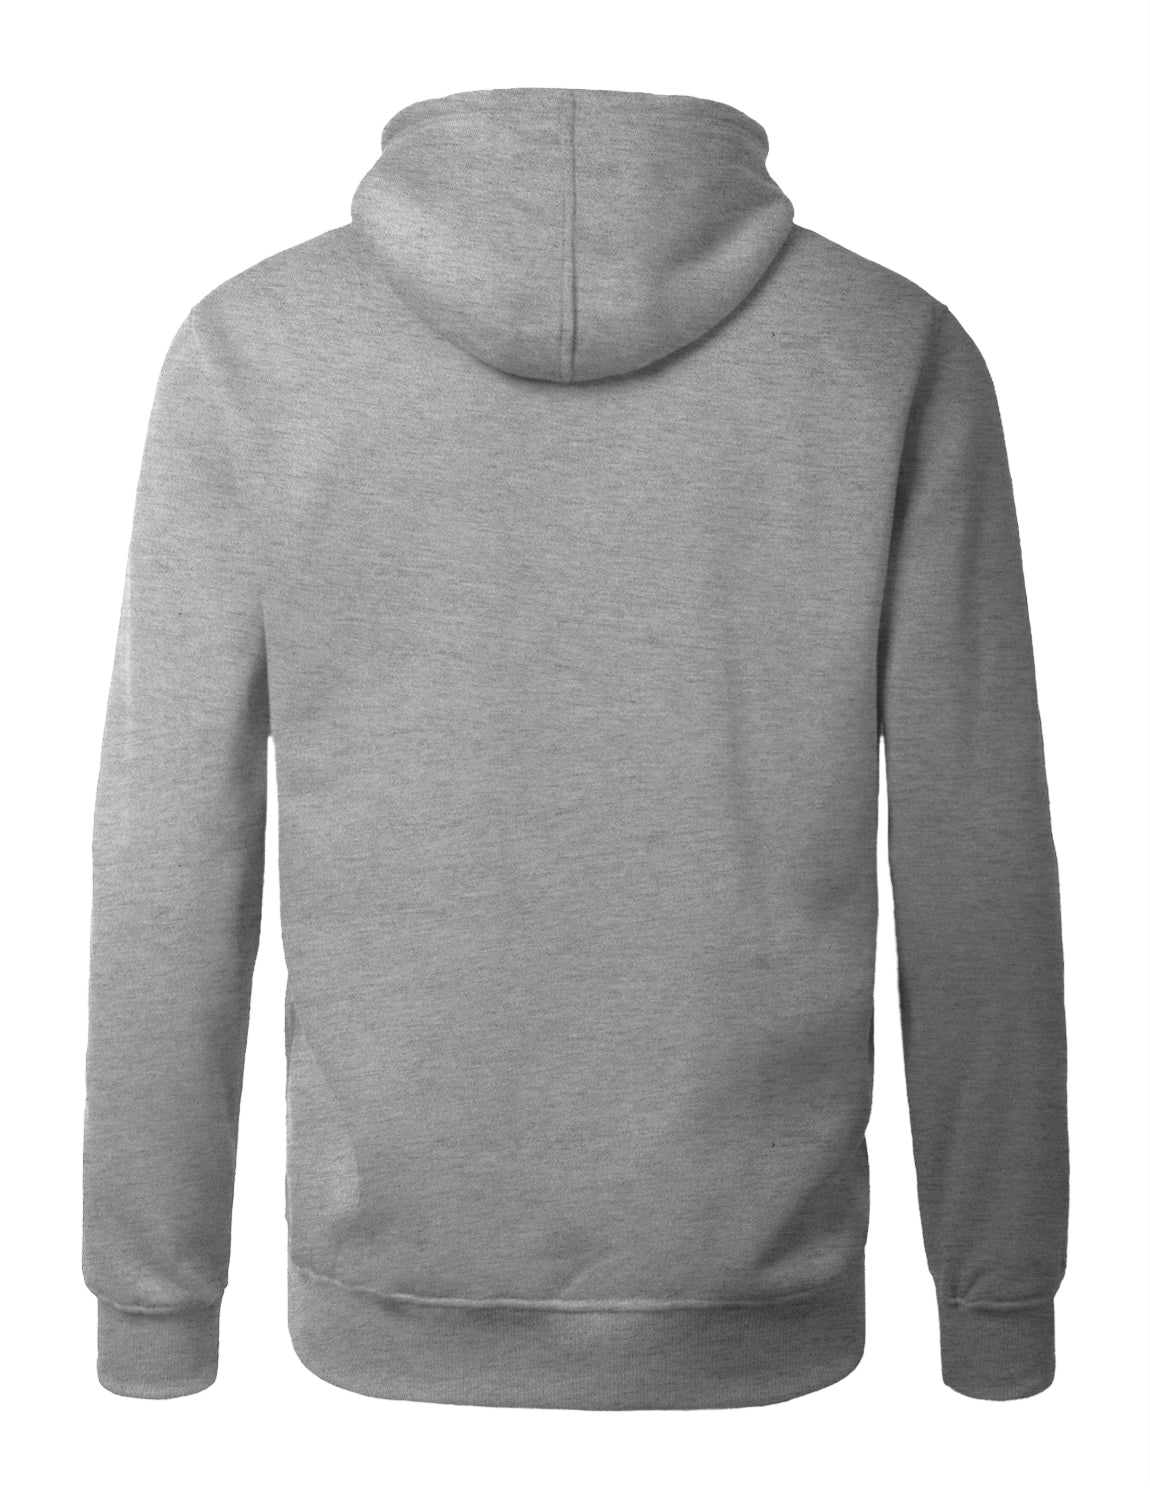 HGREY Lightweight Zip Up Fleece Hoodie - URBANCREWS